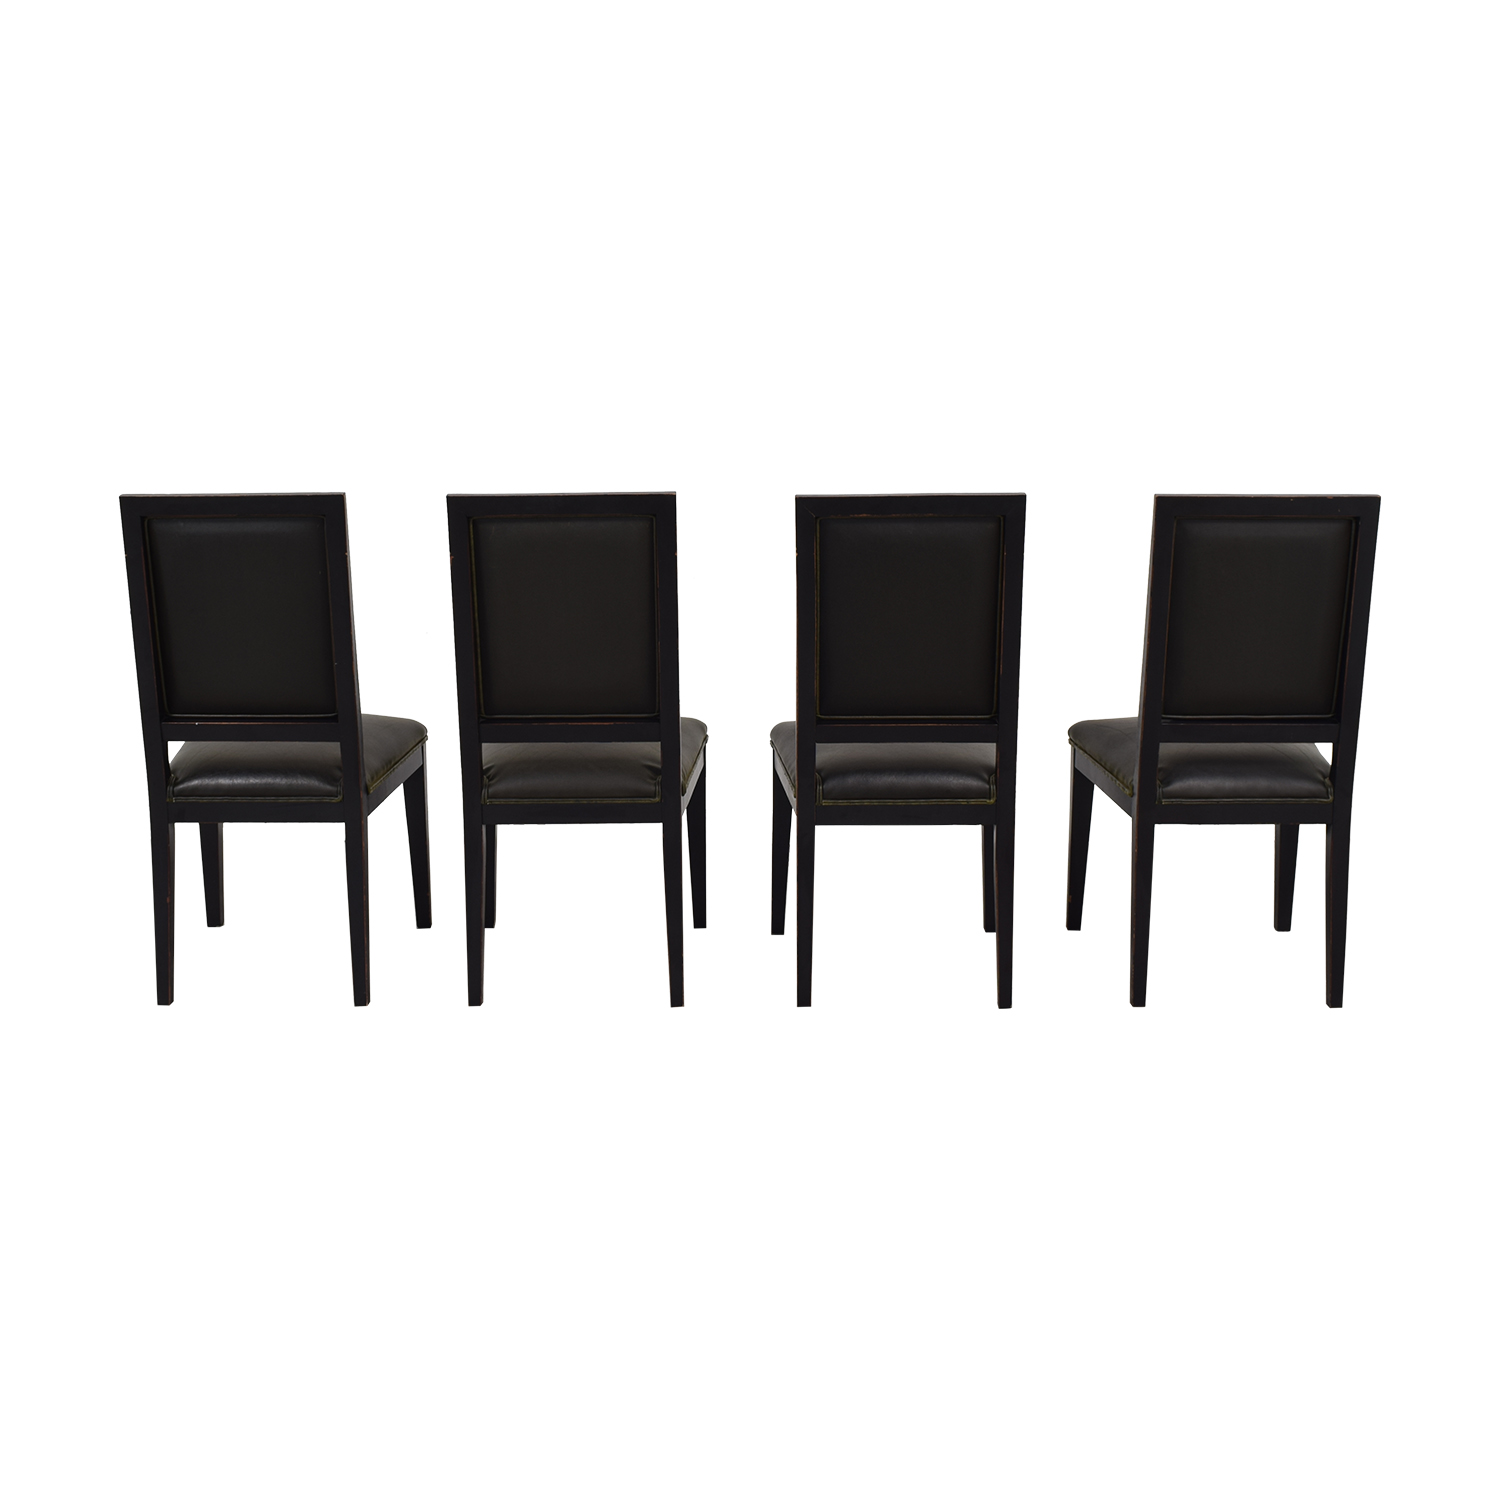 Buying & Design Buying & Design Dining Chairs ct